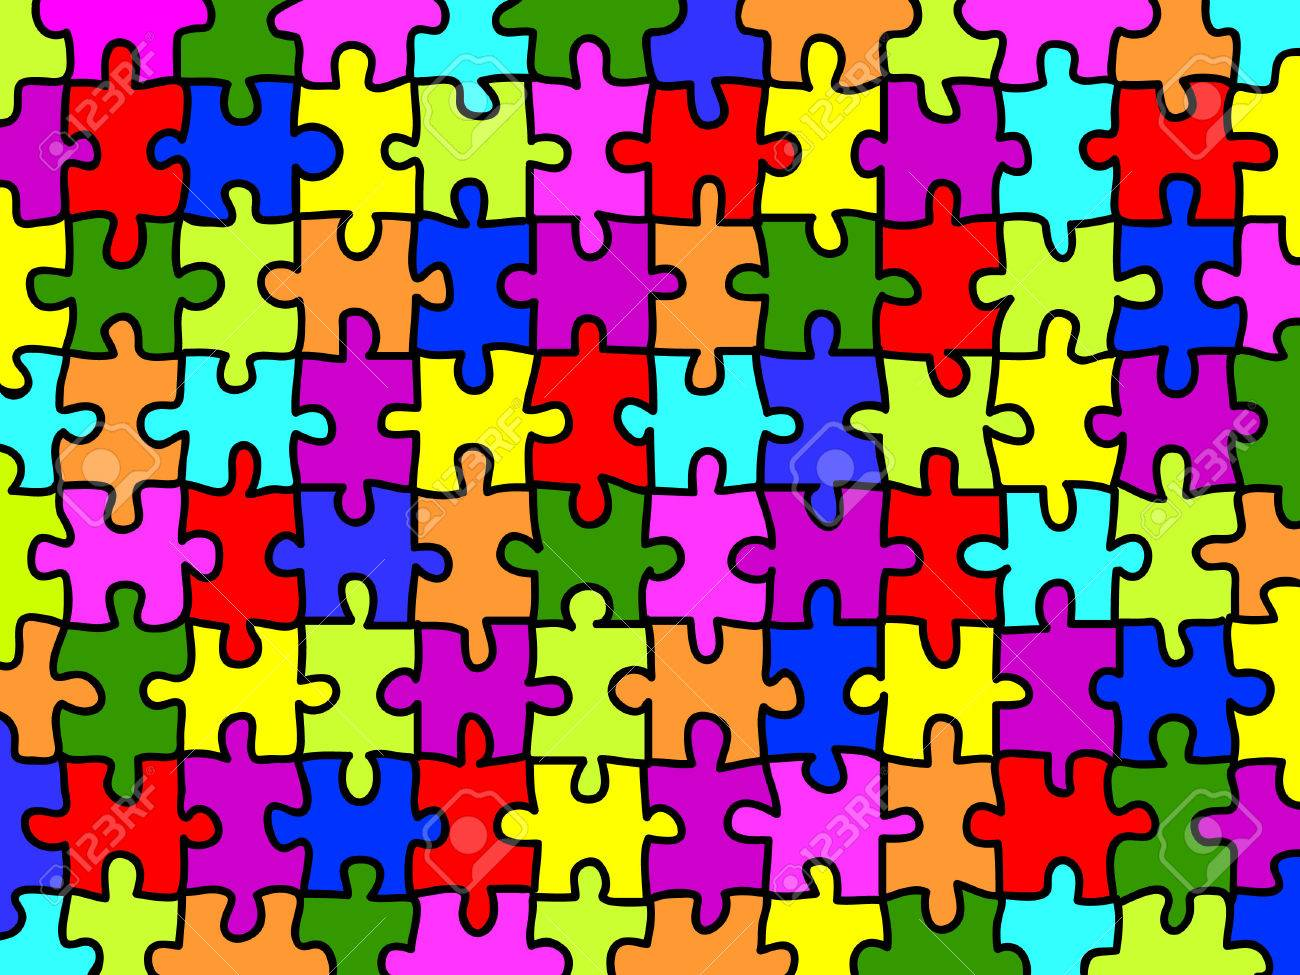 Puzzle Wallpaper Colorful Jigsaw